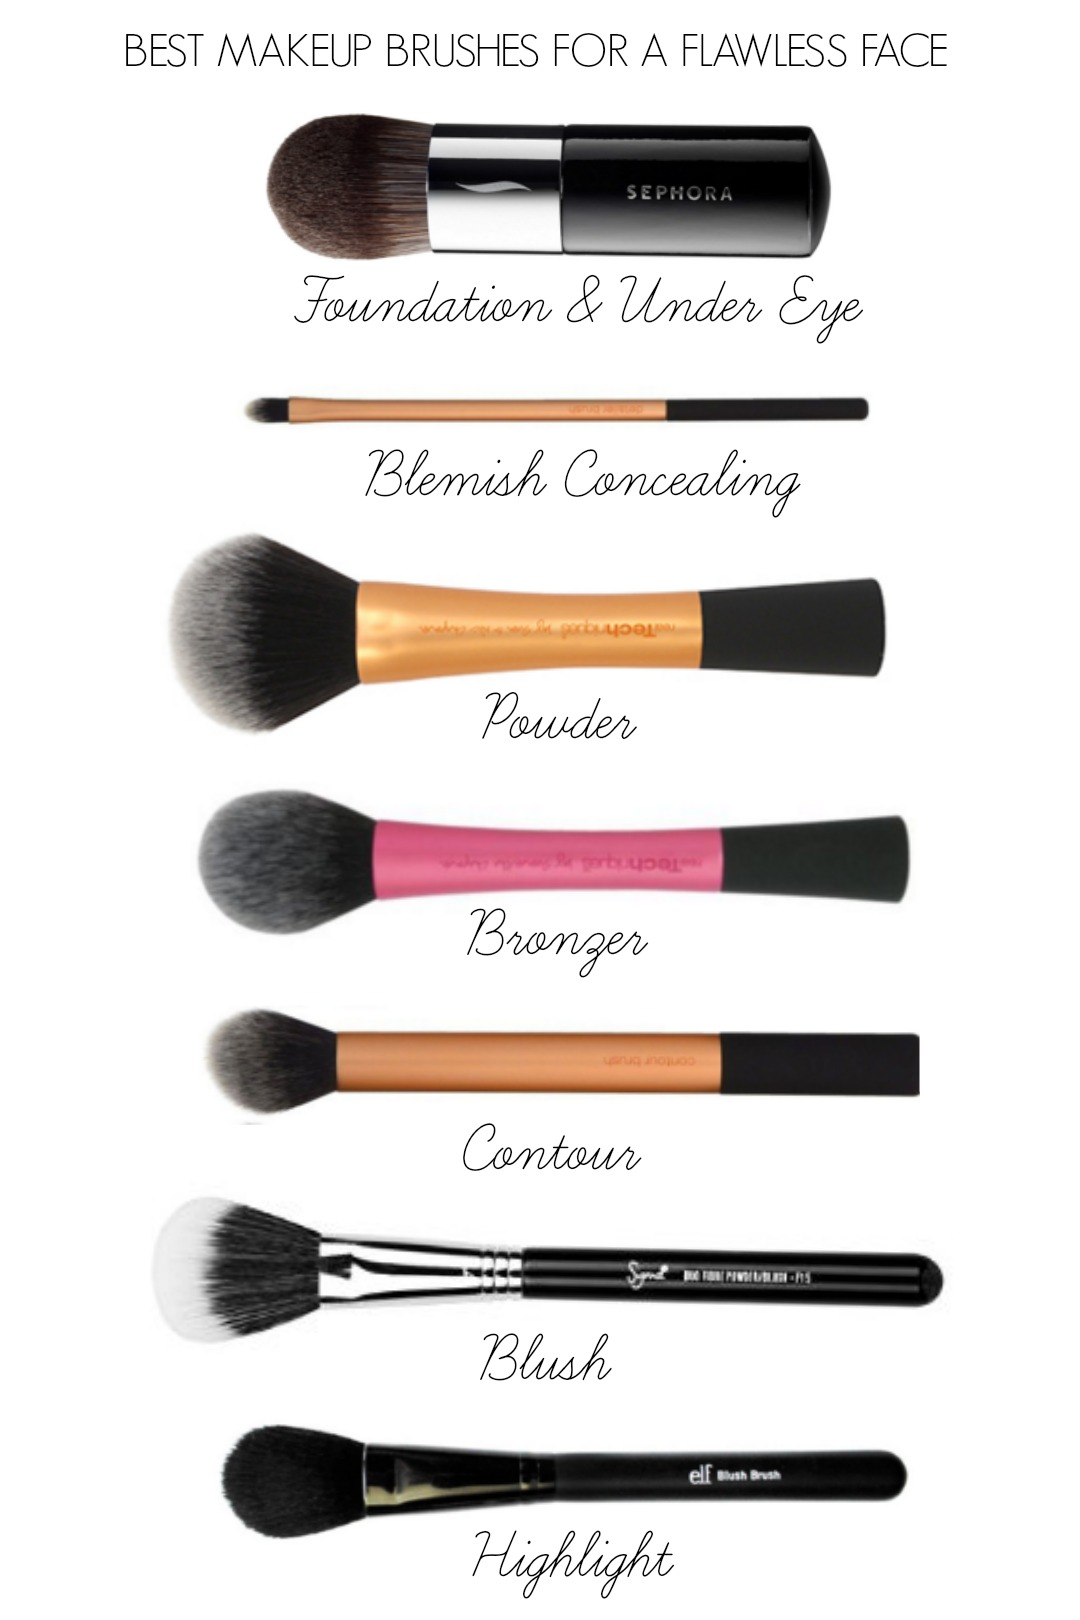 Best-makeup-brushes-for-flawless-face